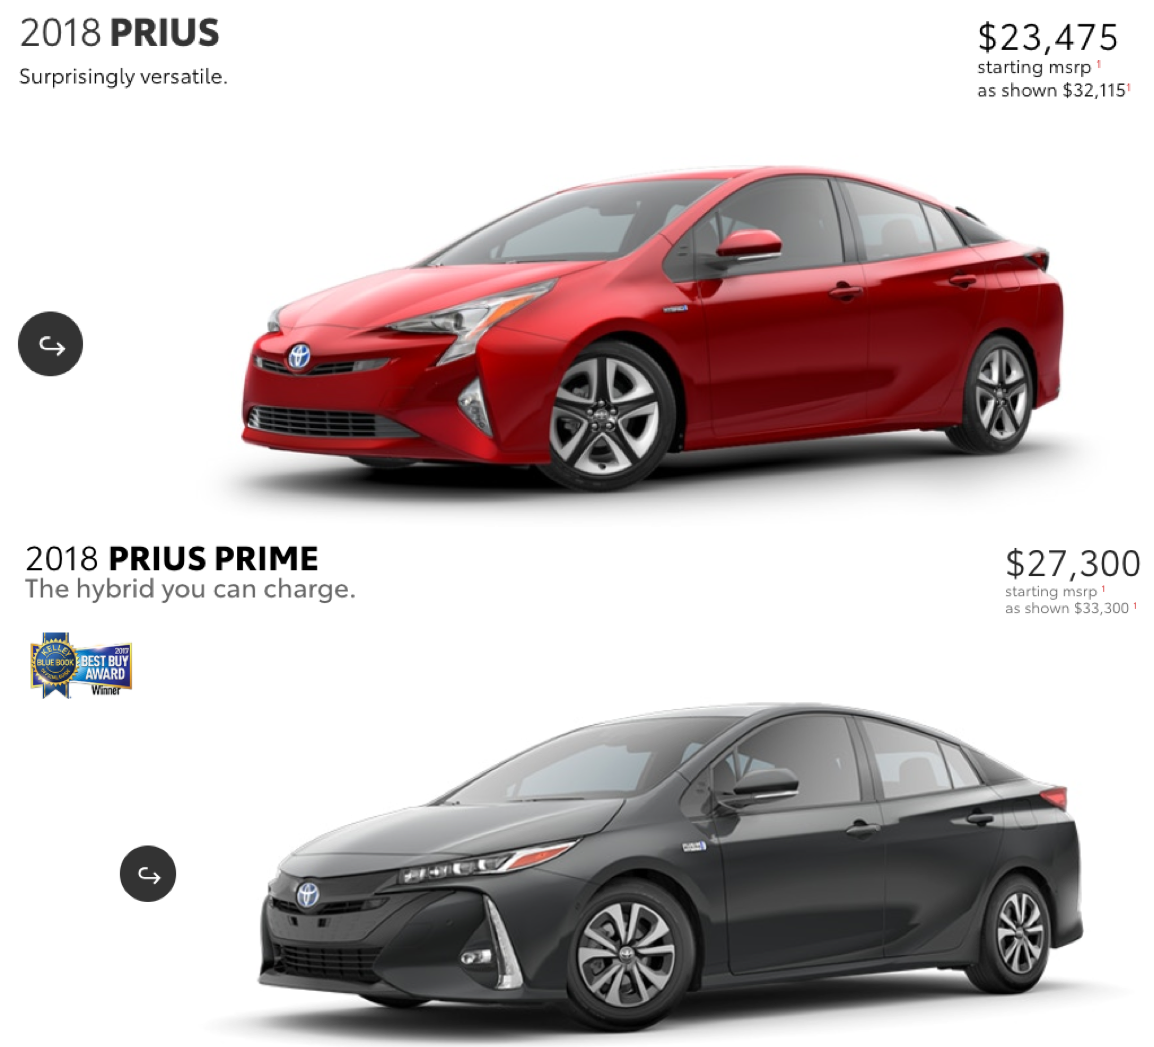 Prius & Prius Prime with pricing